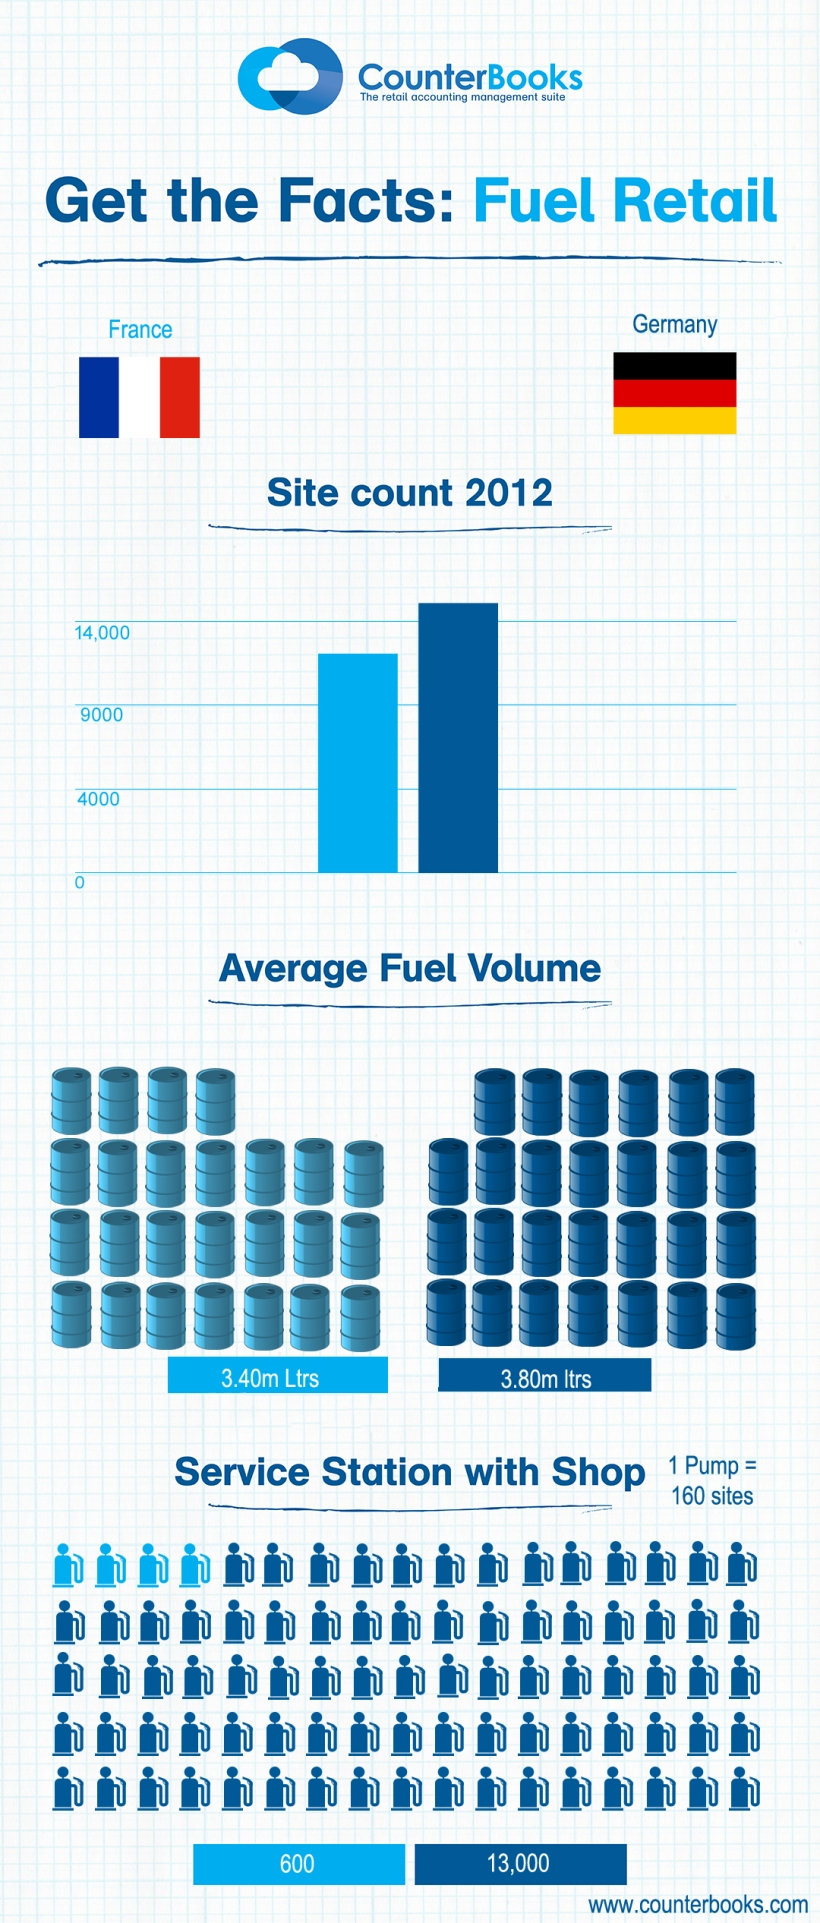 Fuel Retail Infographic